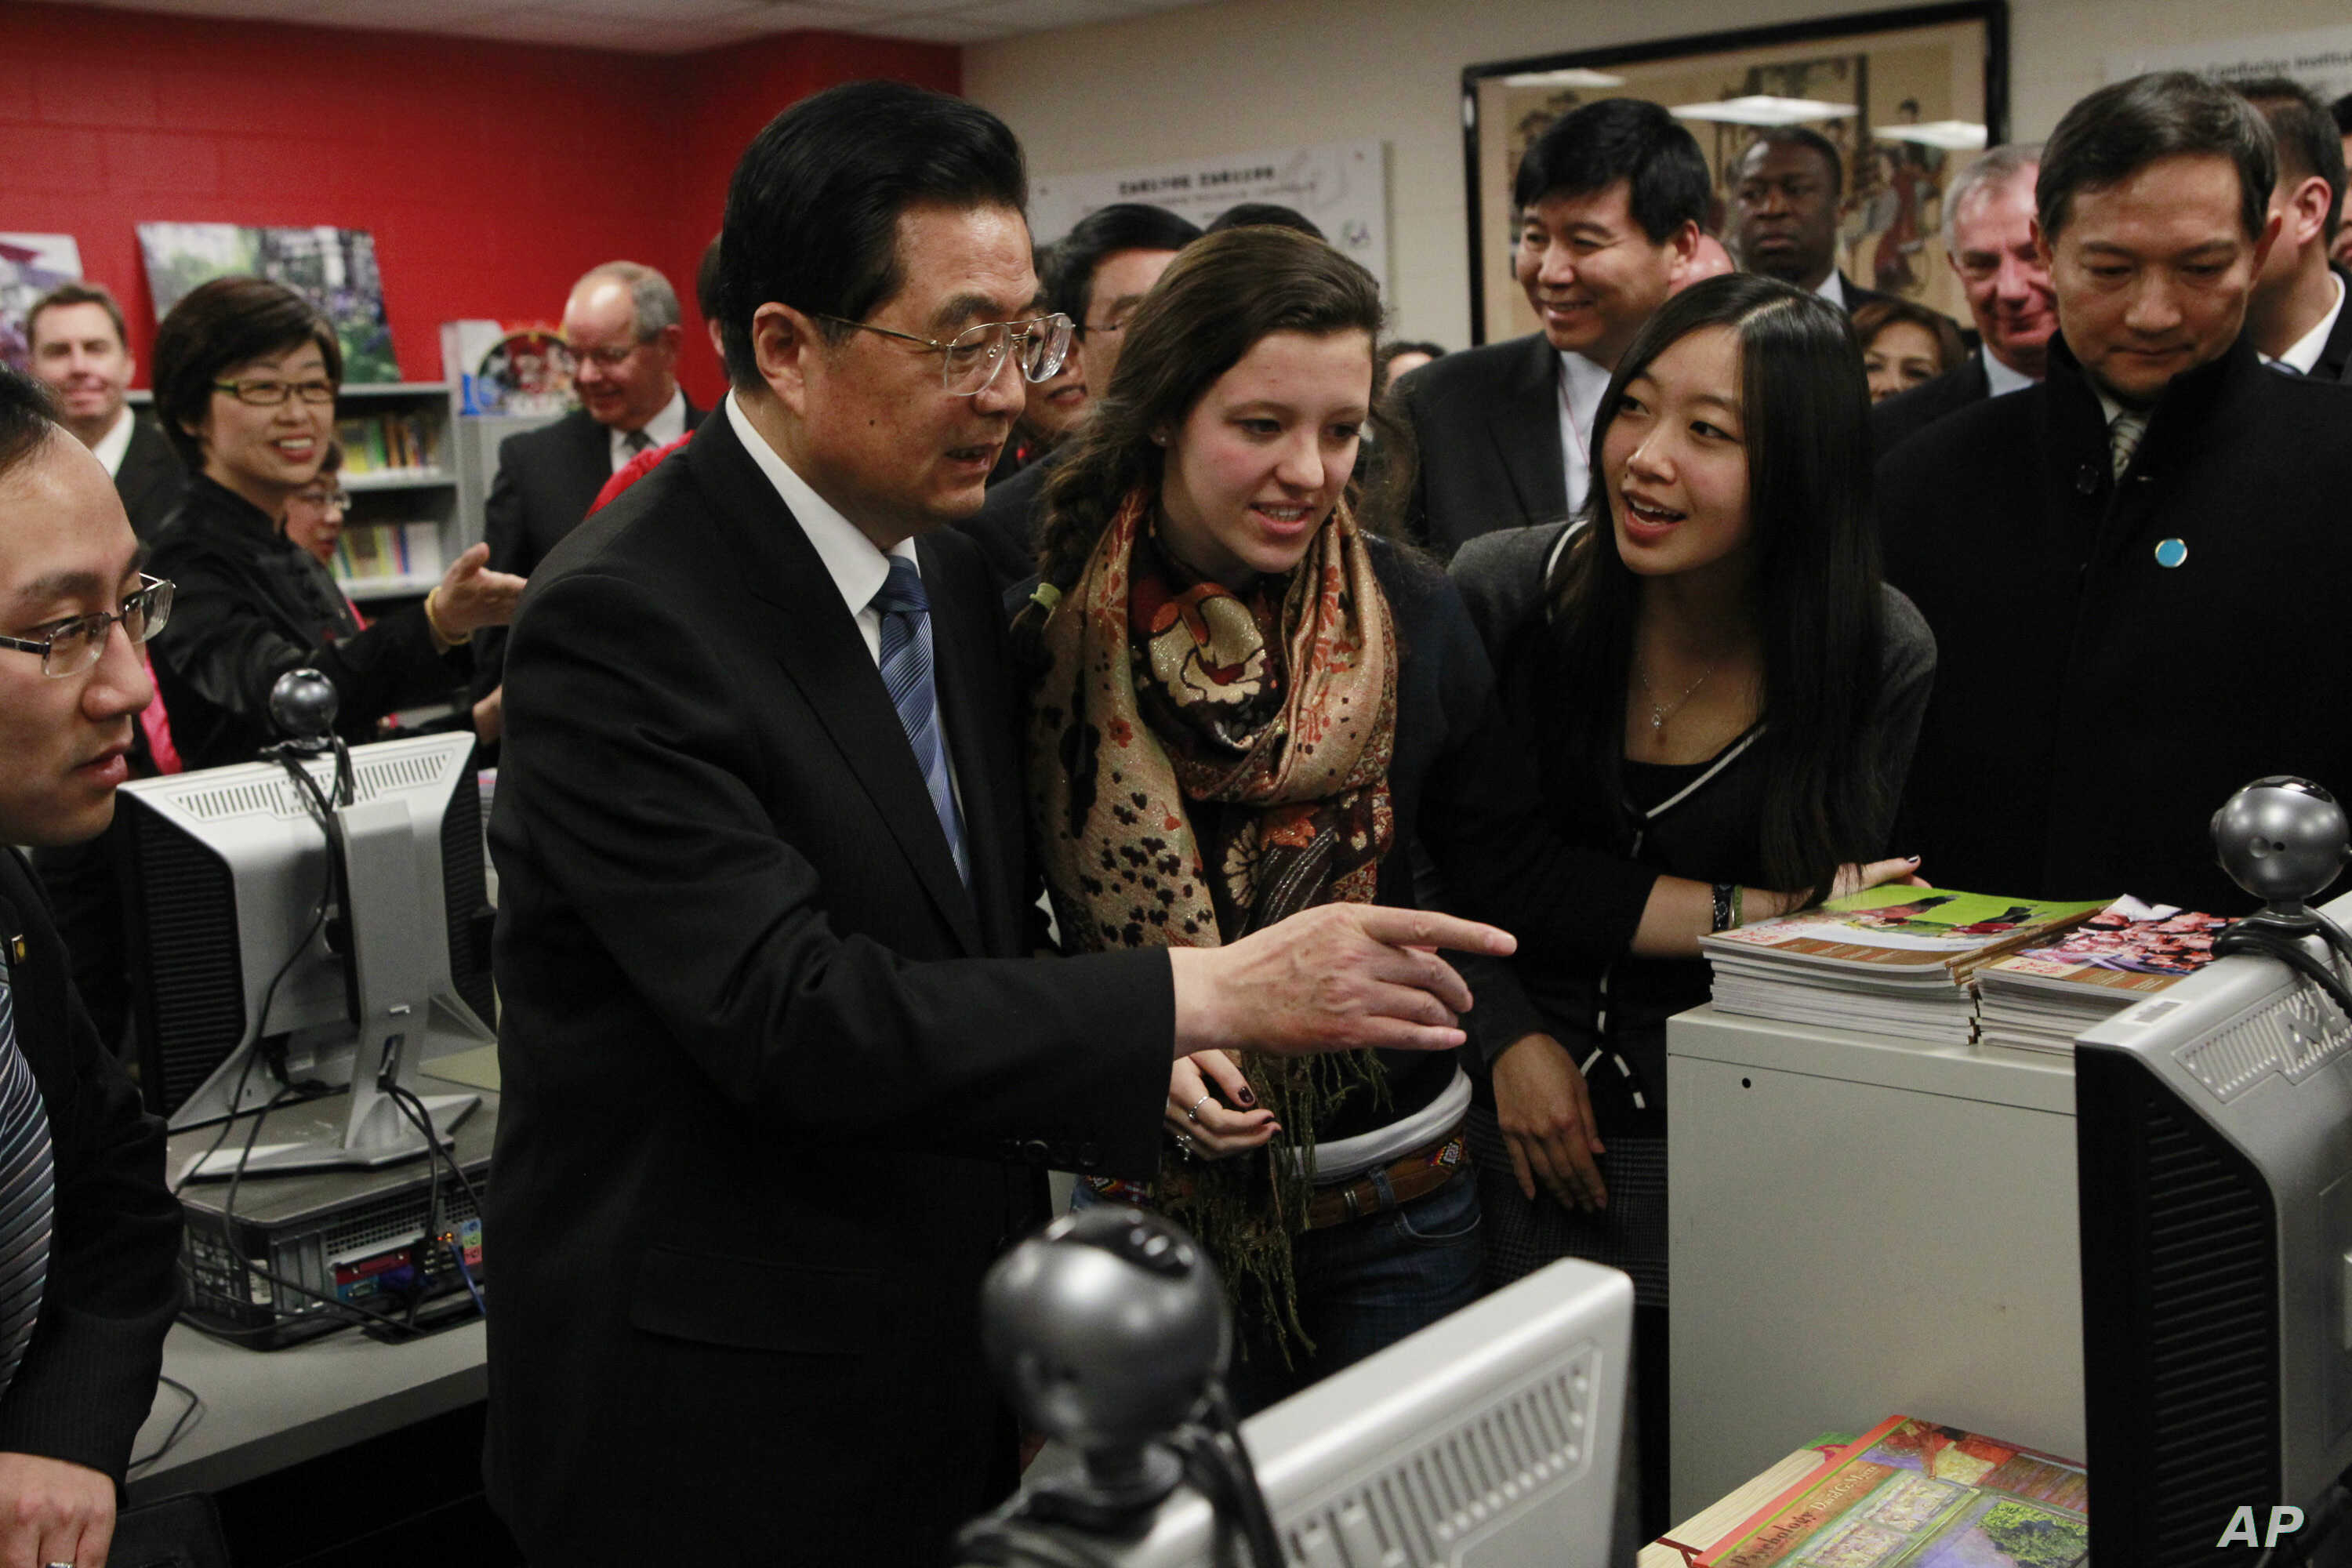 On Jan. 21, 2011, then-Chinese President Hu Jintao visits the The Confucius Institute which is housed at Walter Payton College Preparatory High School in Chicago, Jan. 21, 2011.